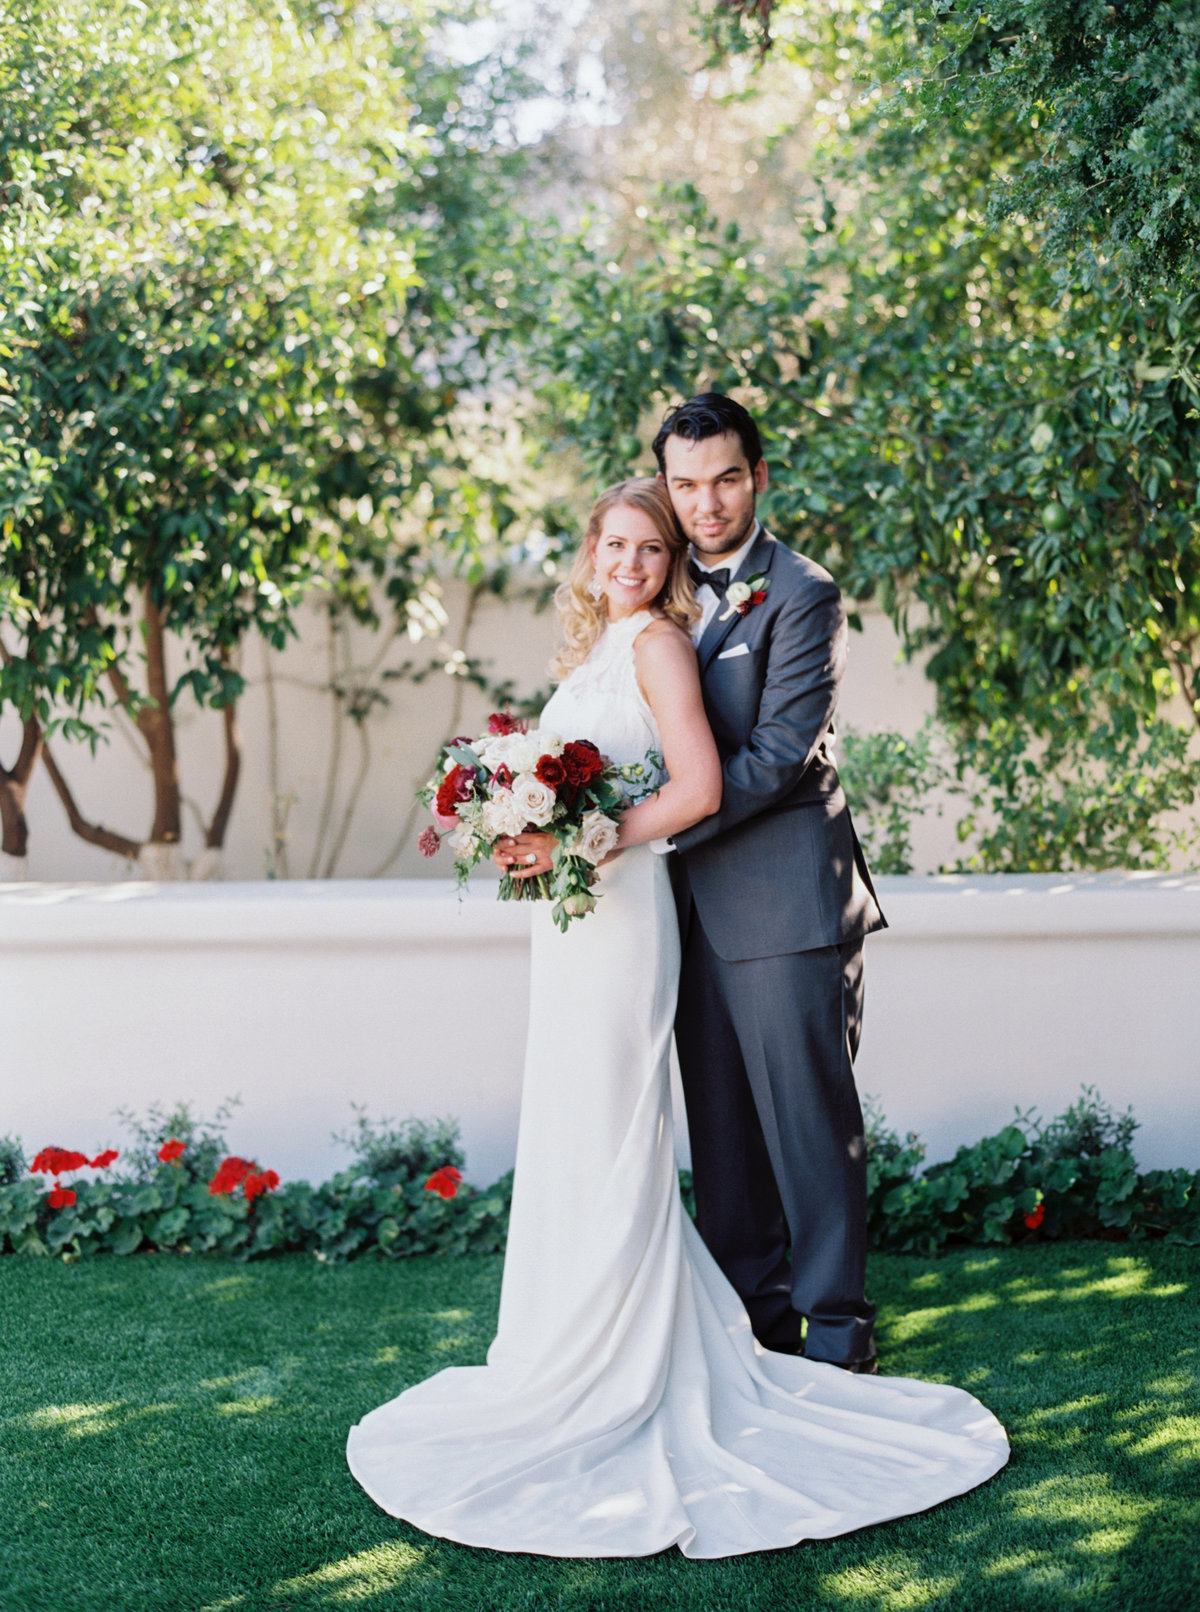 El Chorro Scottsdale Wedding - Mary Claire Photography-11